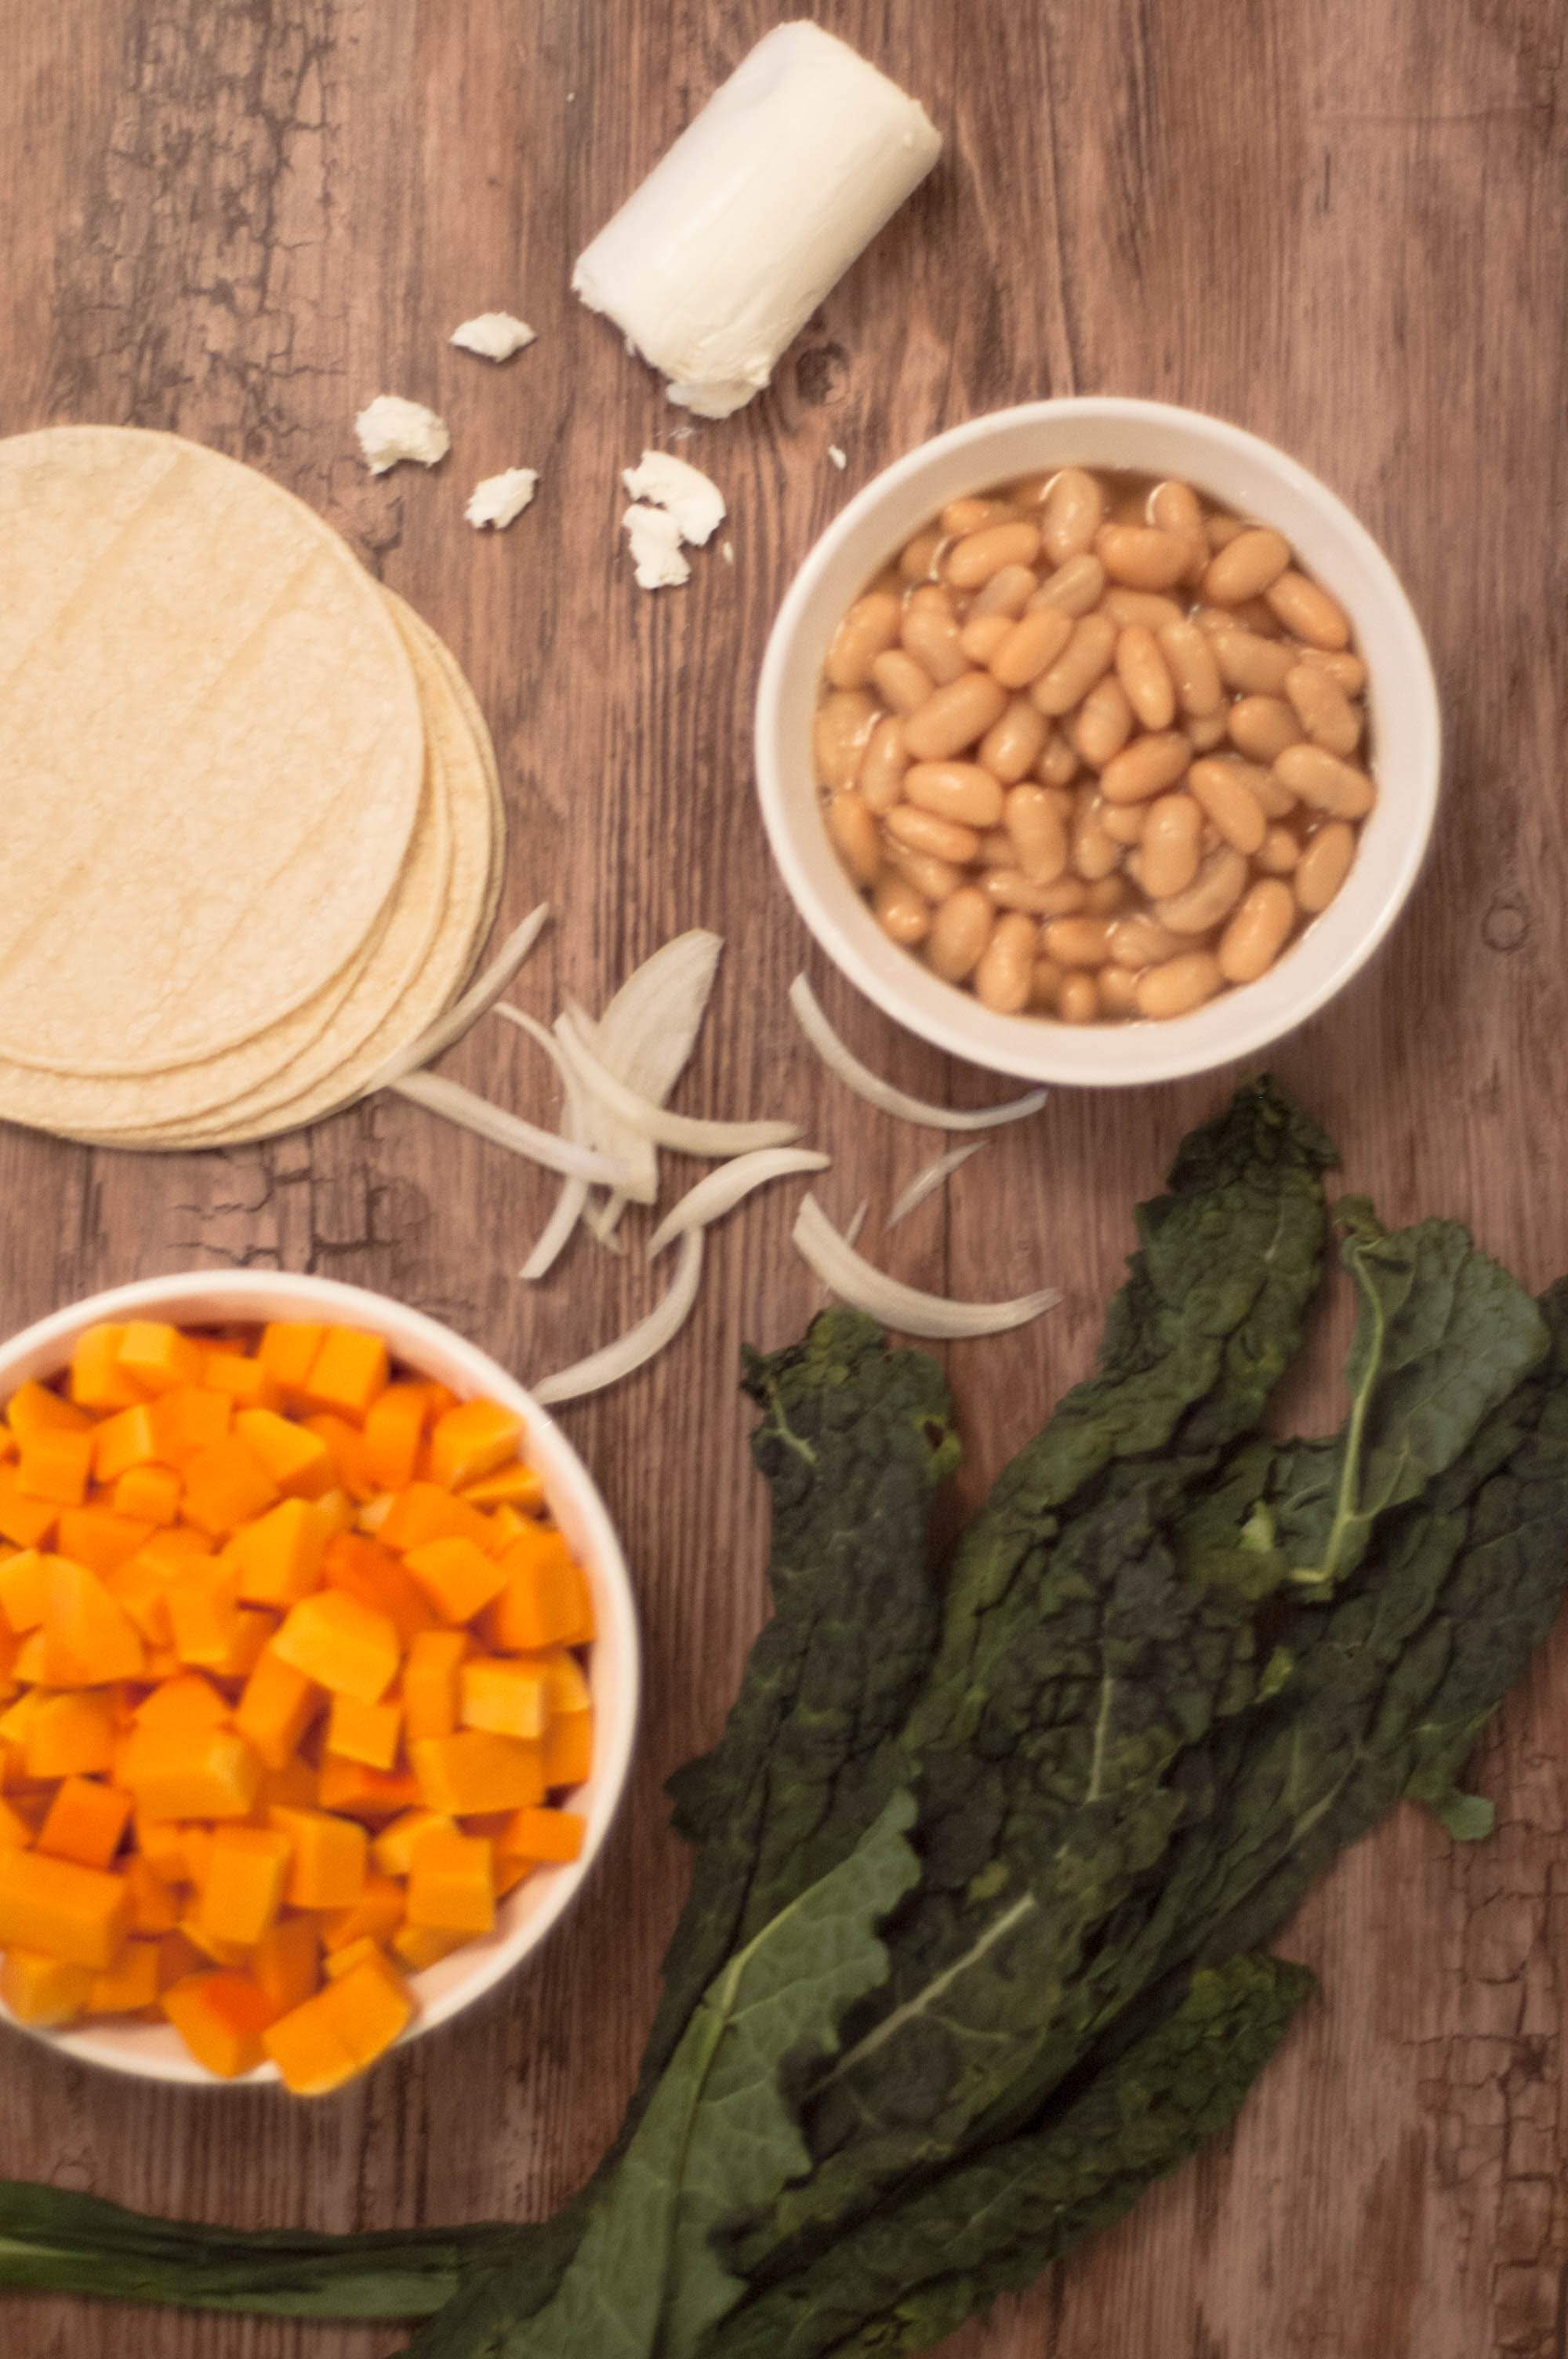 All of the ingredients to make pumpkin tacos in individual containers